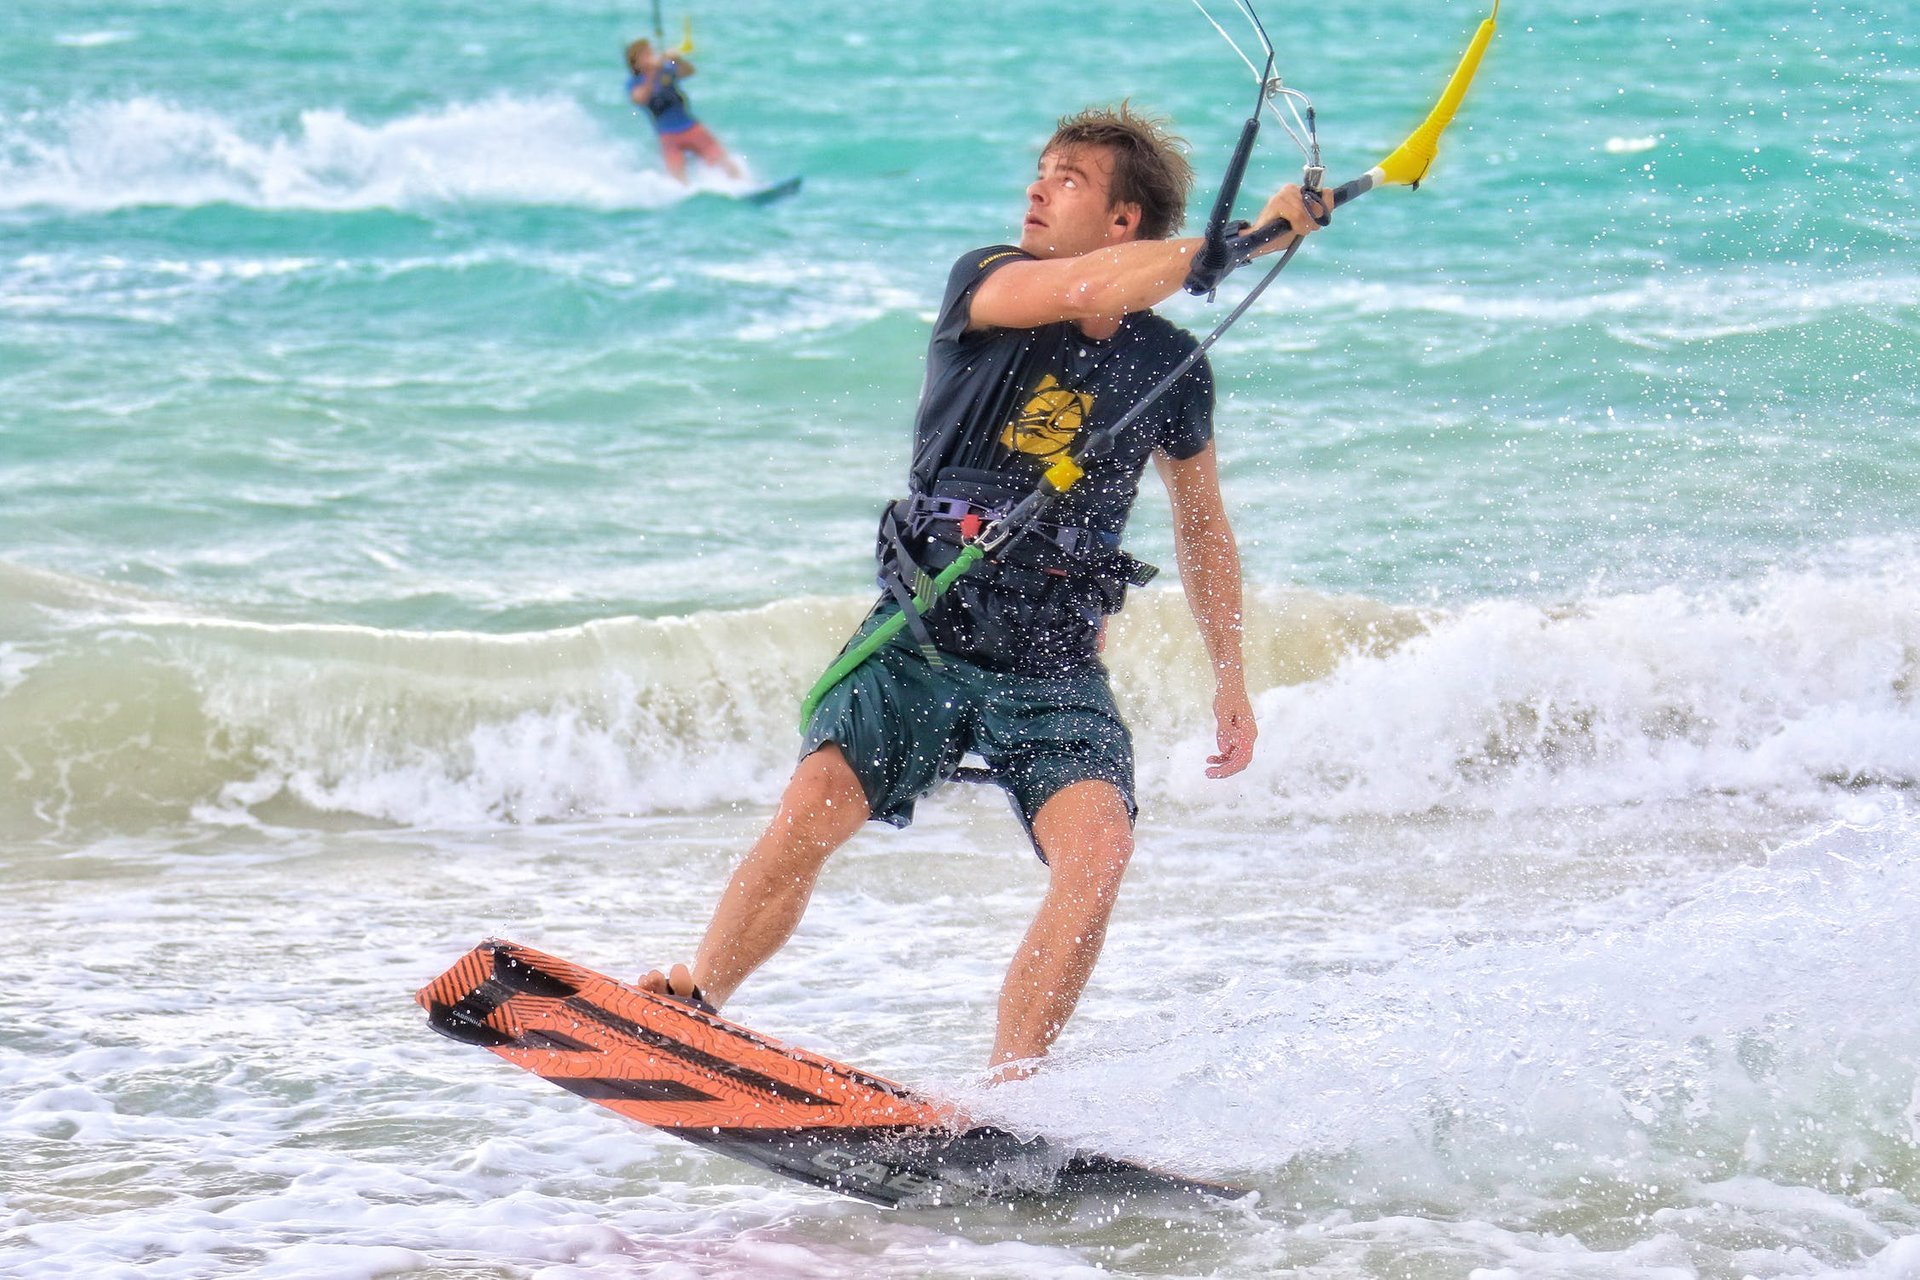 Kitesurfing & Windsurfing in Bahamas 2020 - Best Time